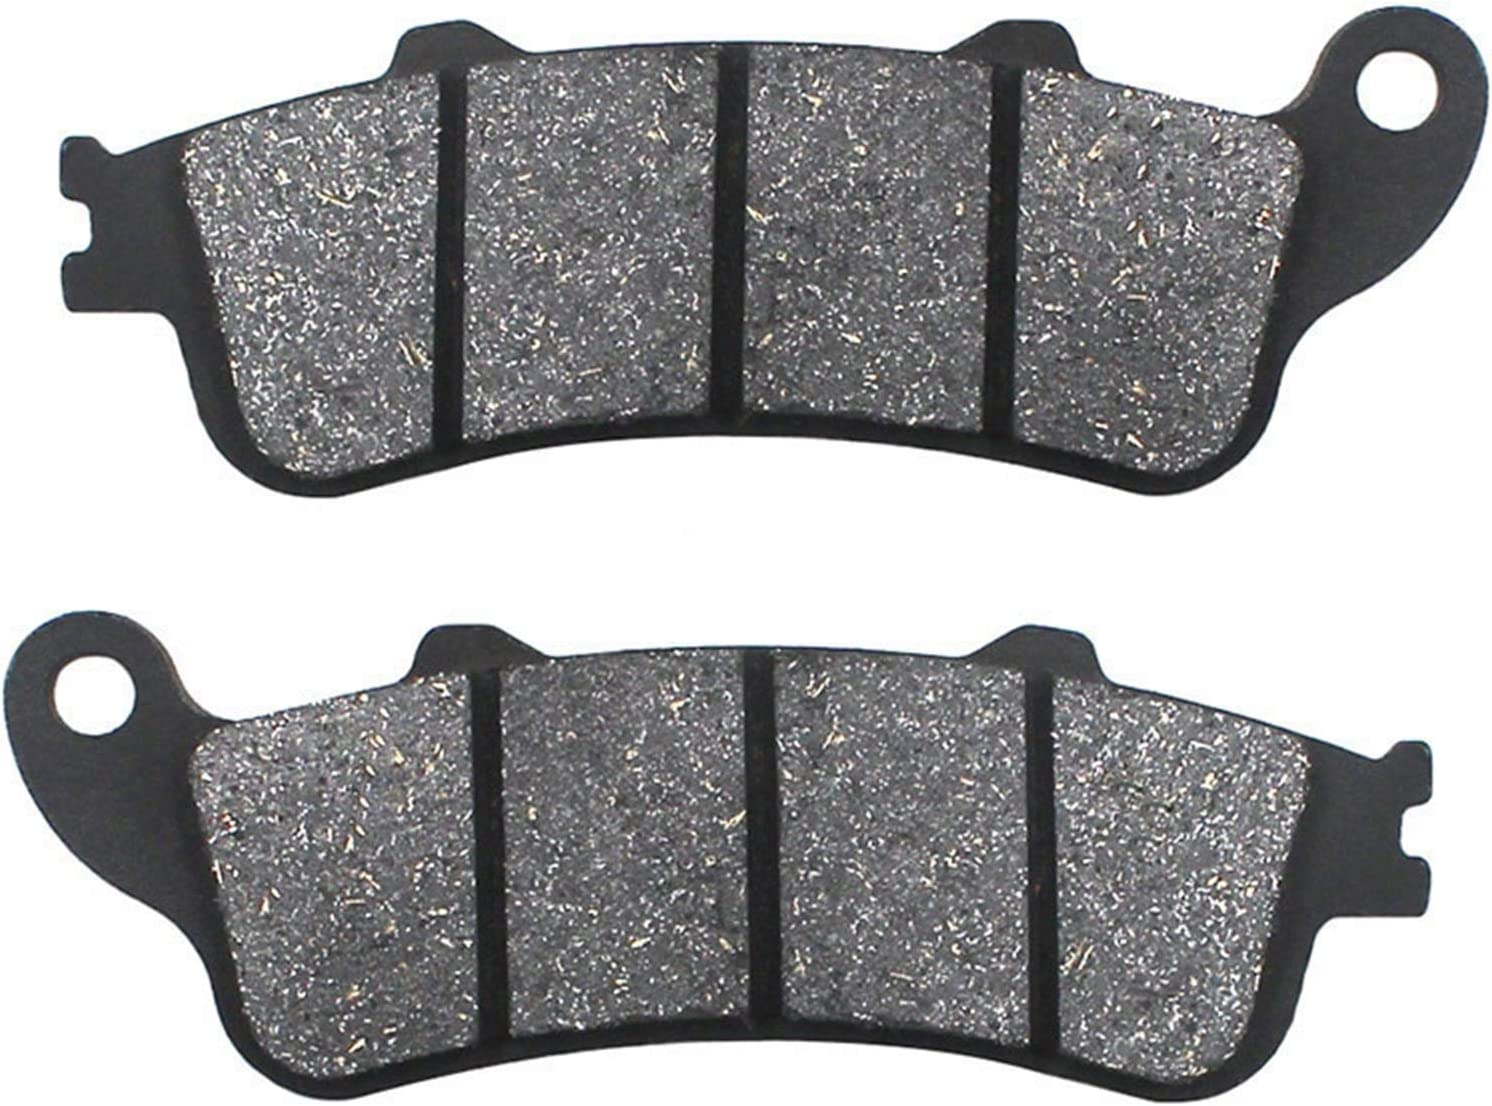 All stores are sold price Durable brake pads 3 Pairs Motorcycle For Brake HONDA Pads XL100